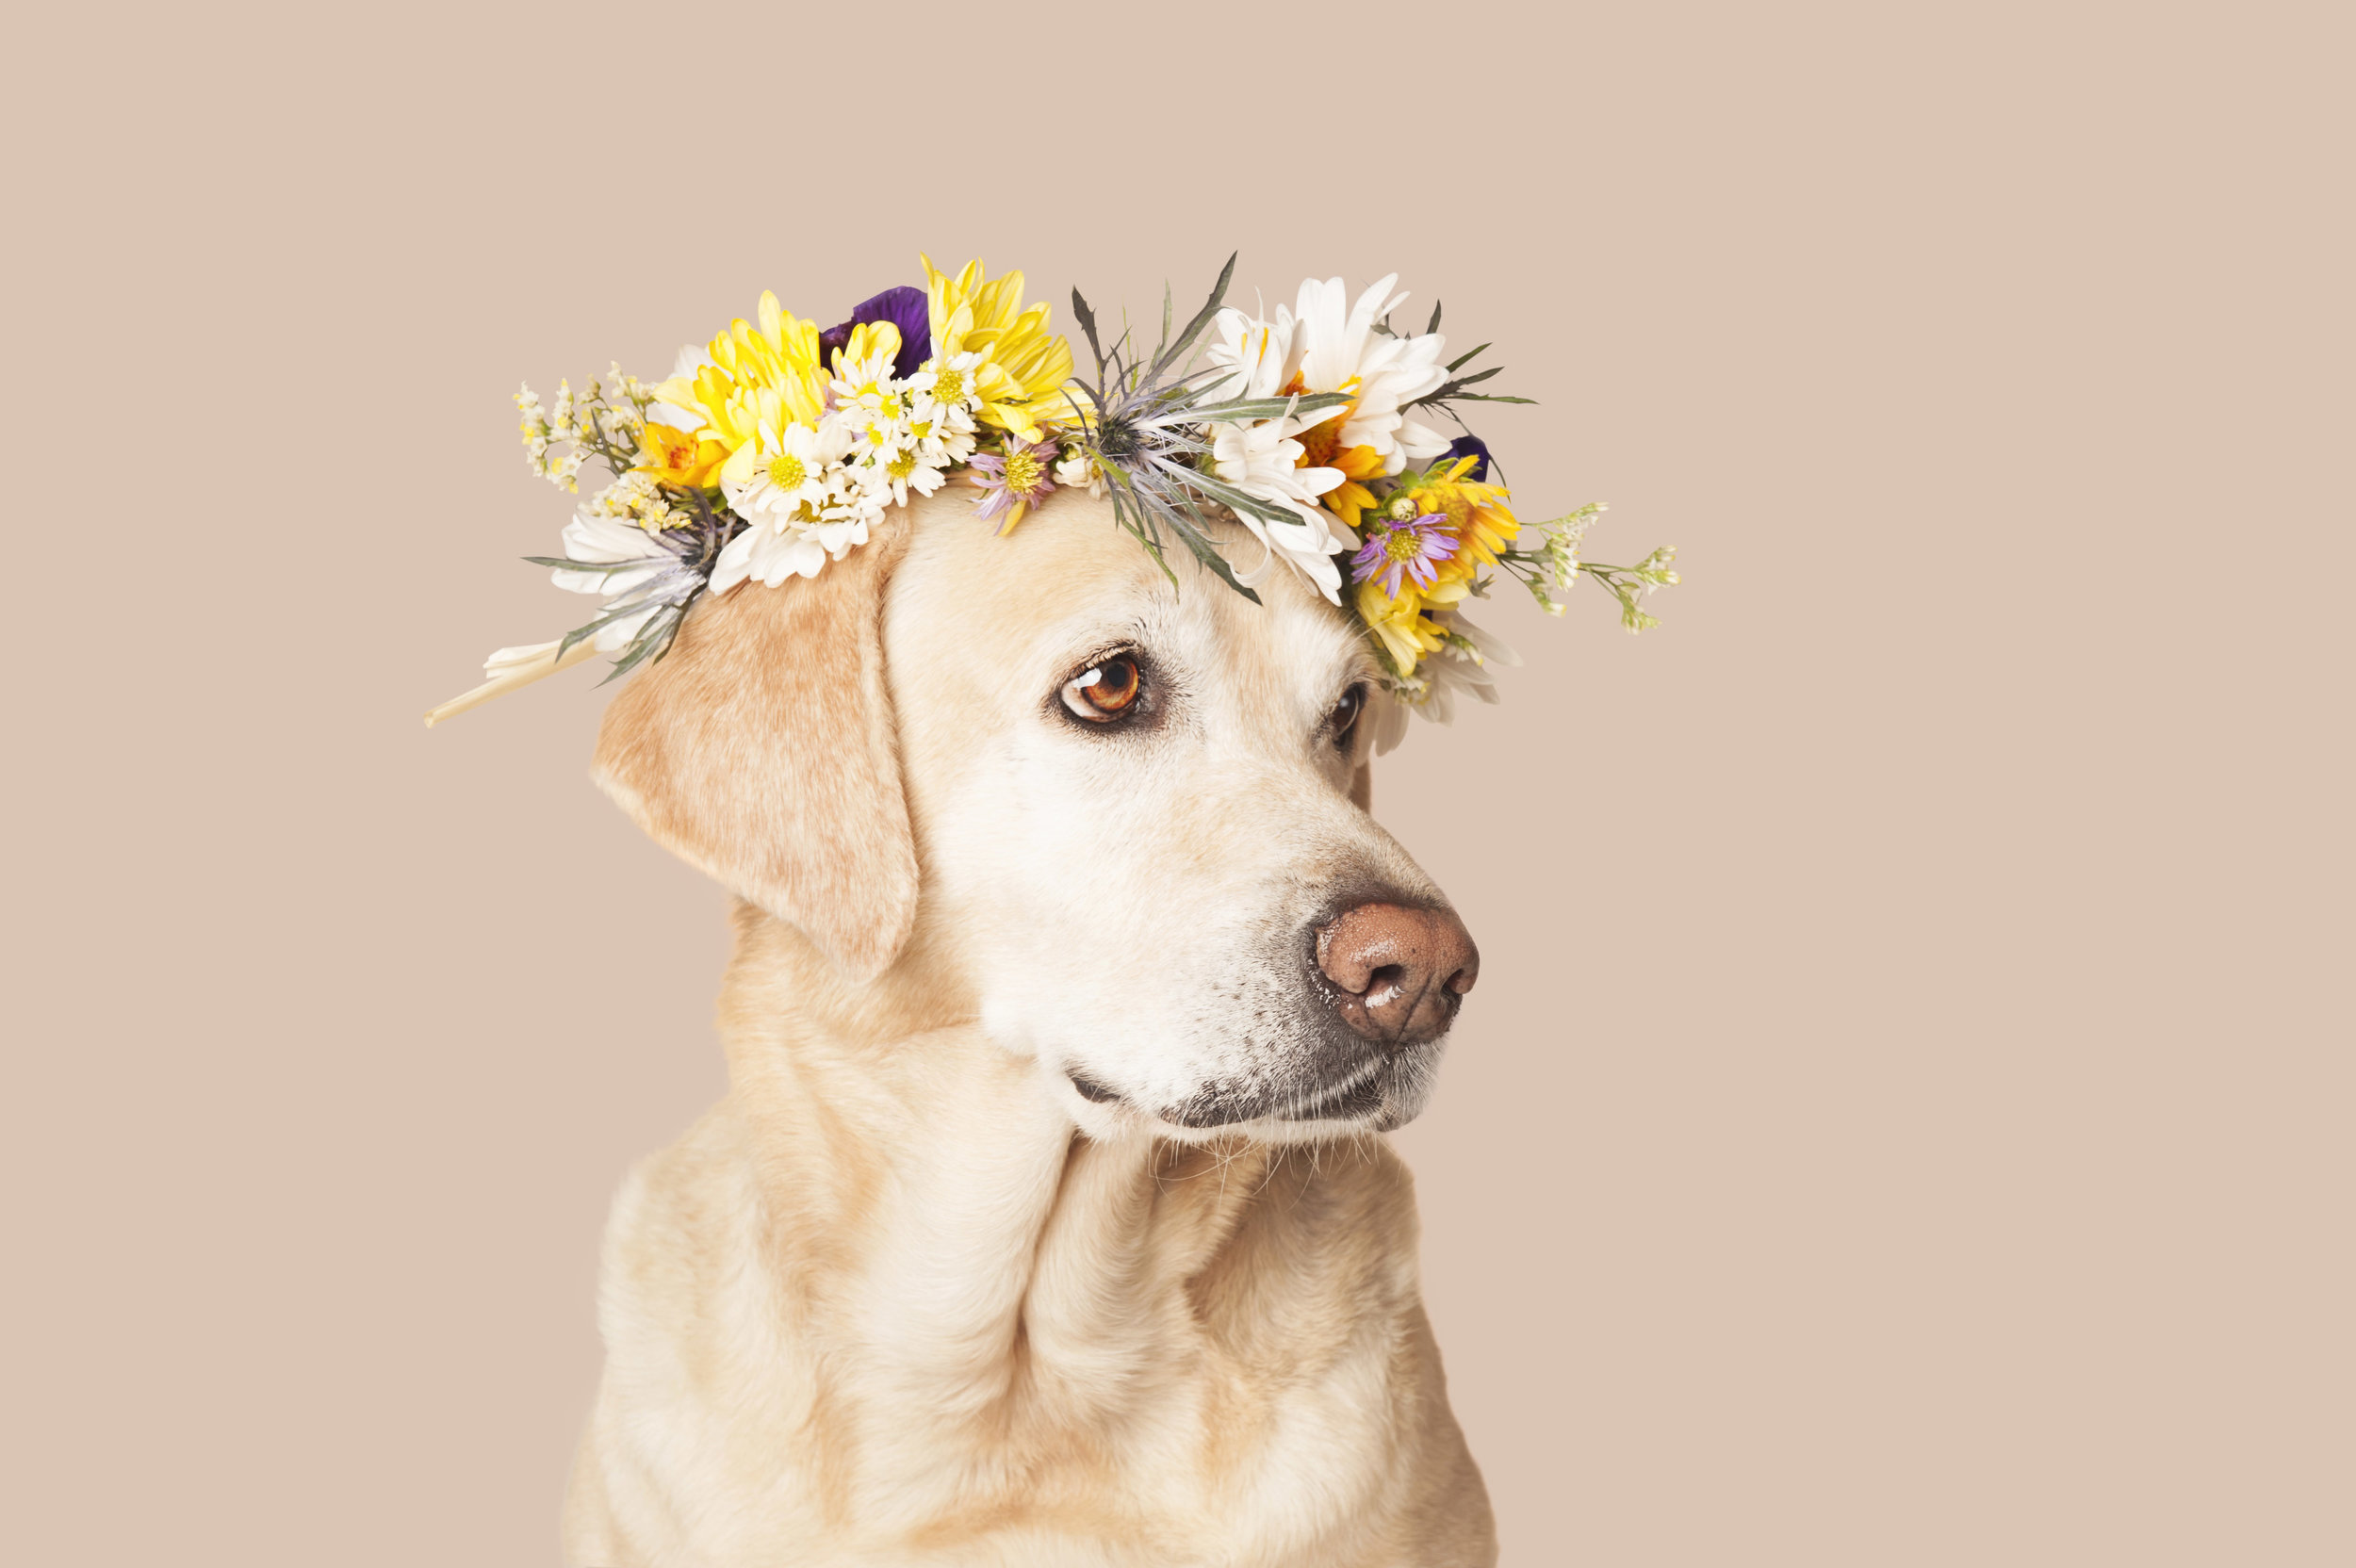 Paola-Paladini-Studio-Sunny-labrador-rescue-with-flower-crown